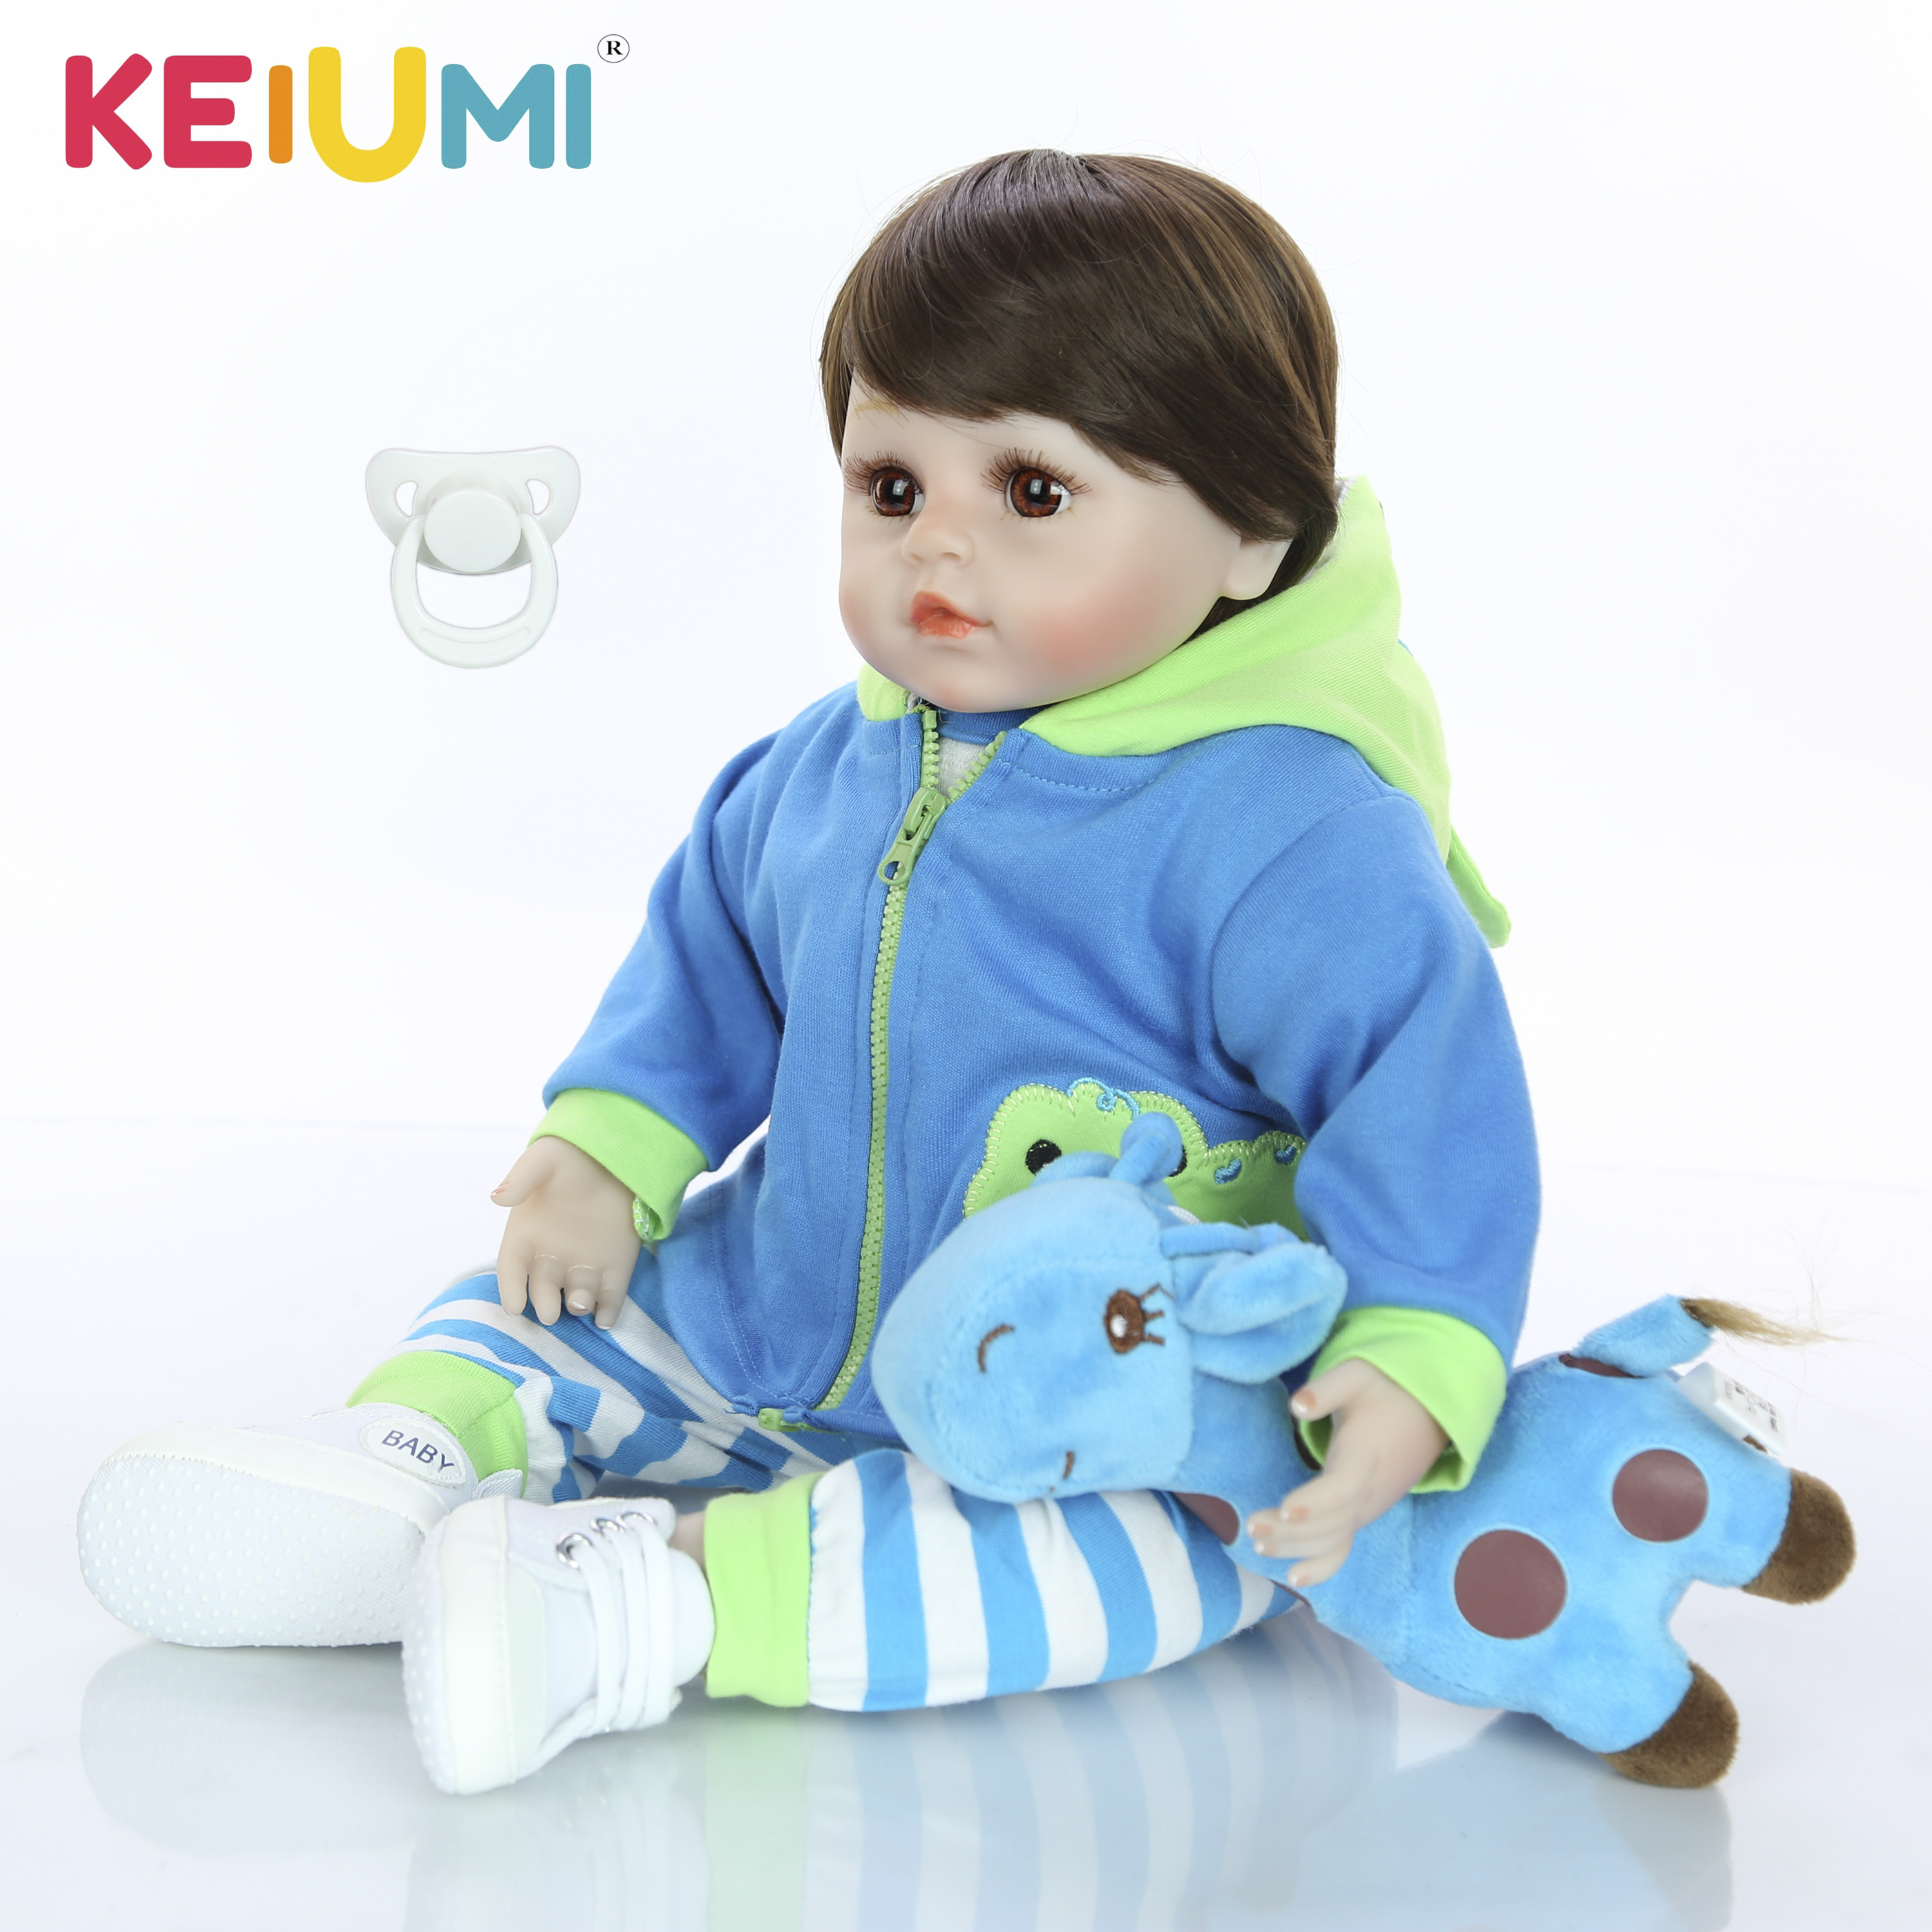 Doll Toy Christmas-Gift Silicone Reborn Newborn-Baby 18inch Playmates KEIUMI Realistic